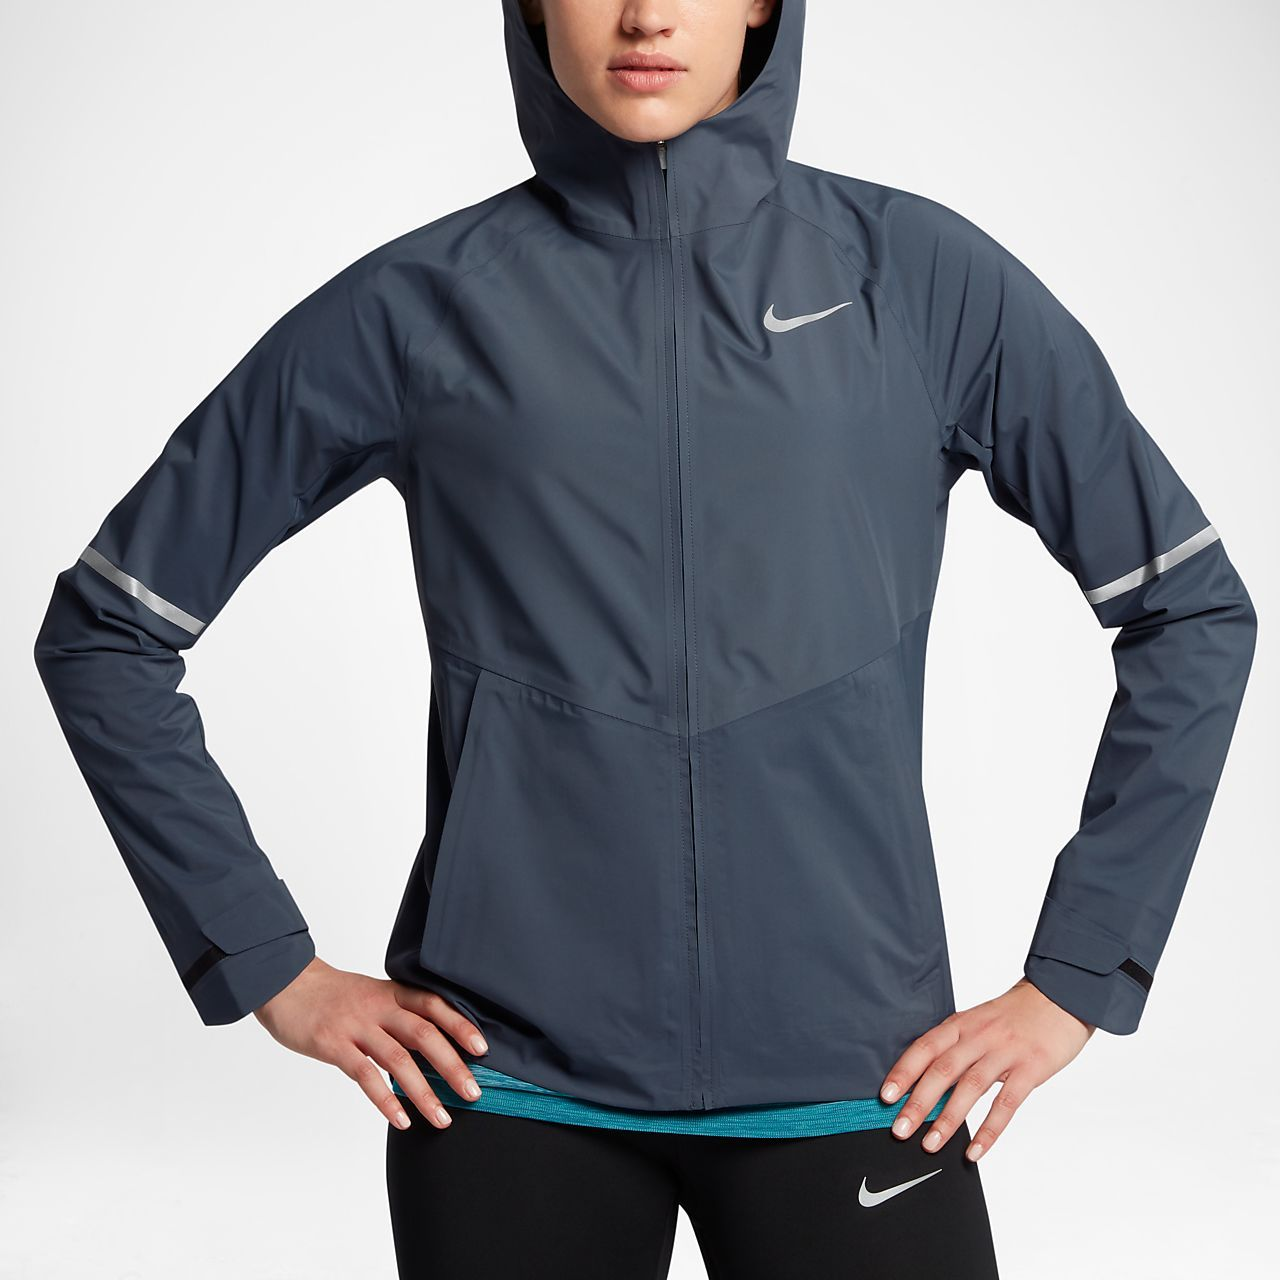 Nike AeroShield Women's Running Jacket in 2019 | Running